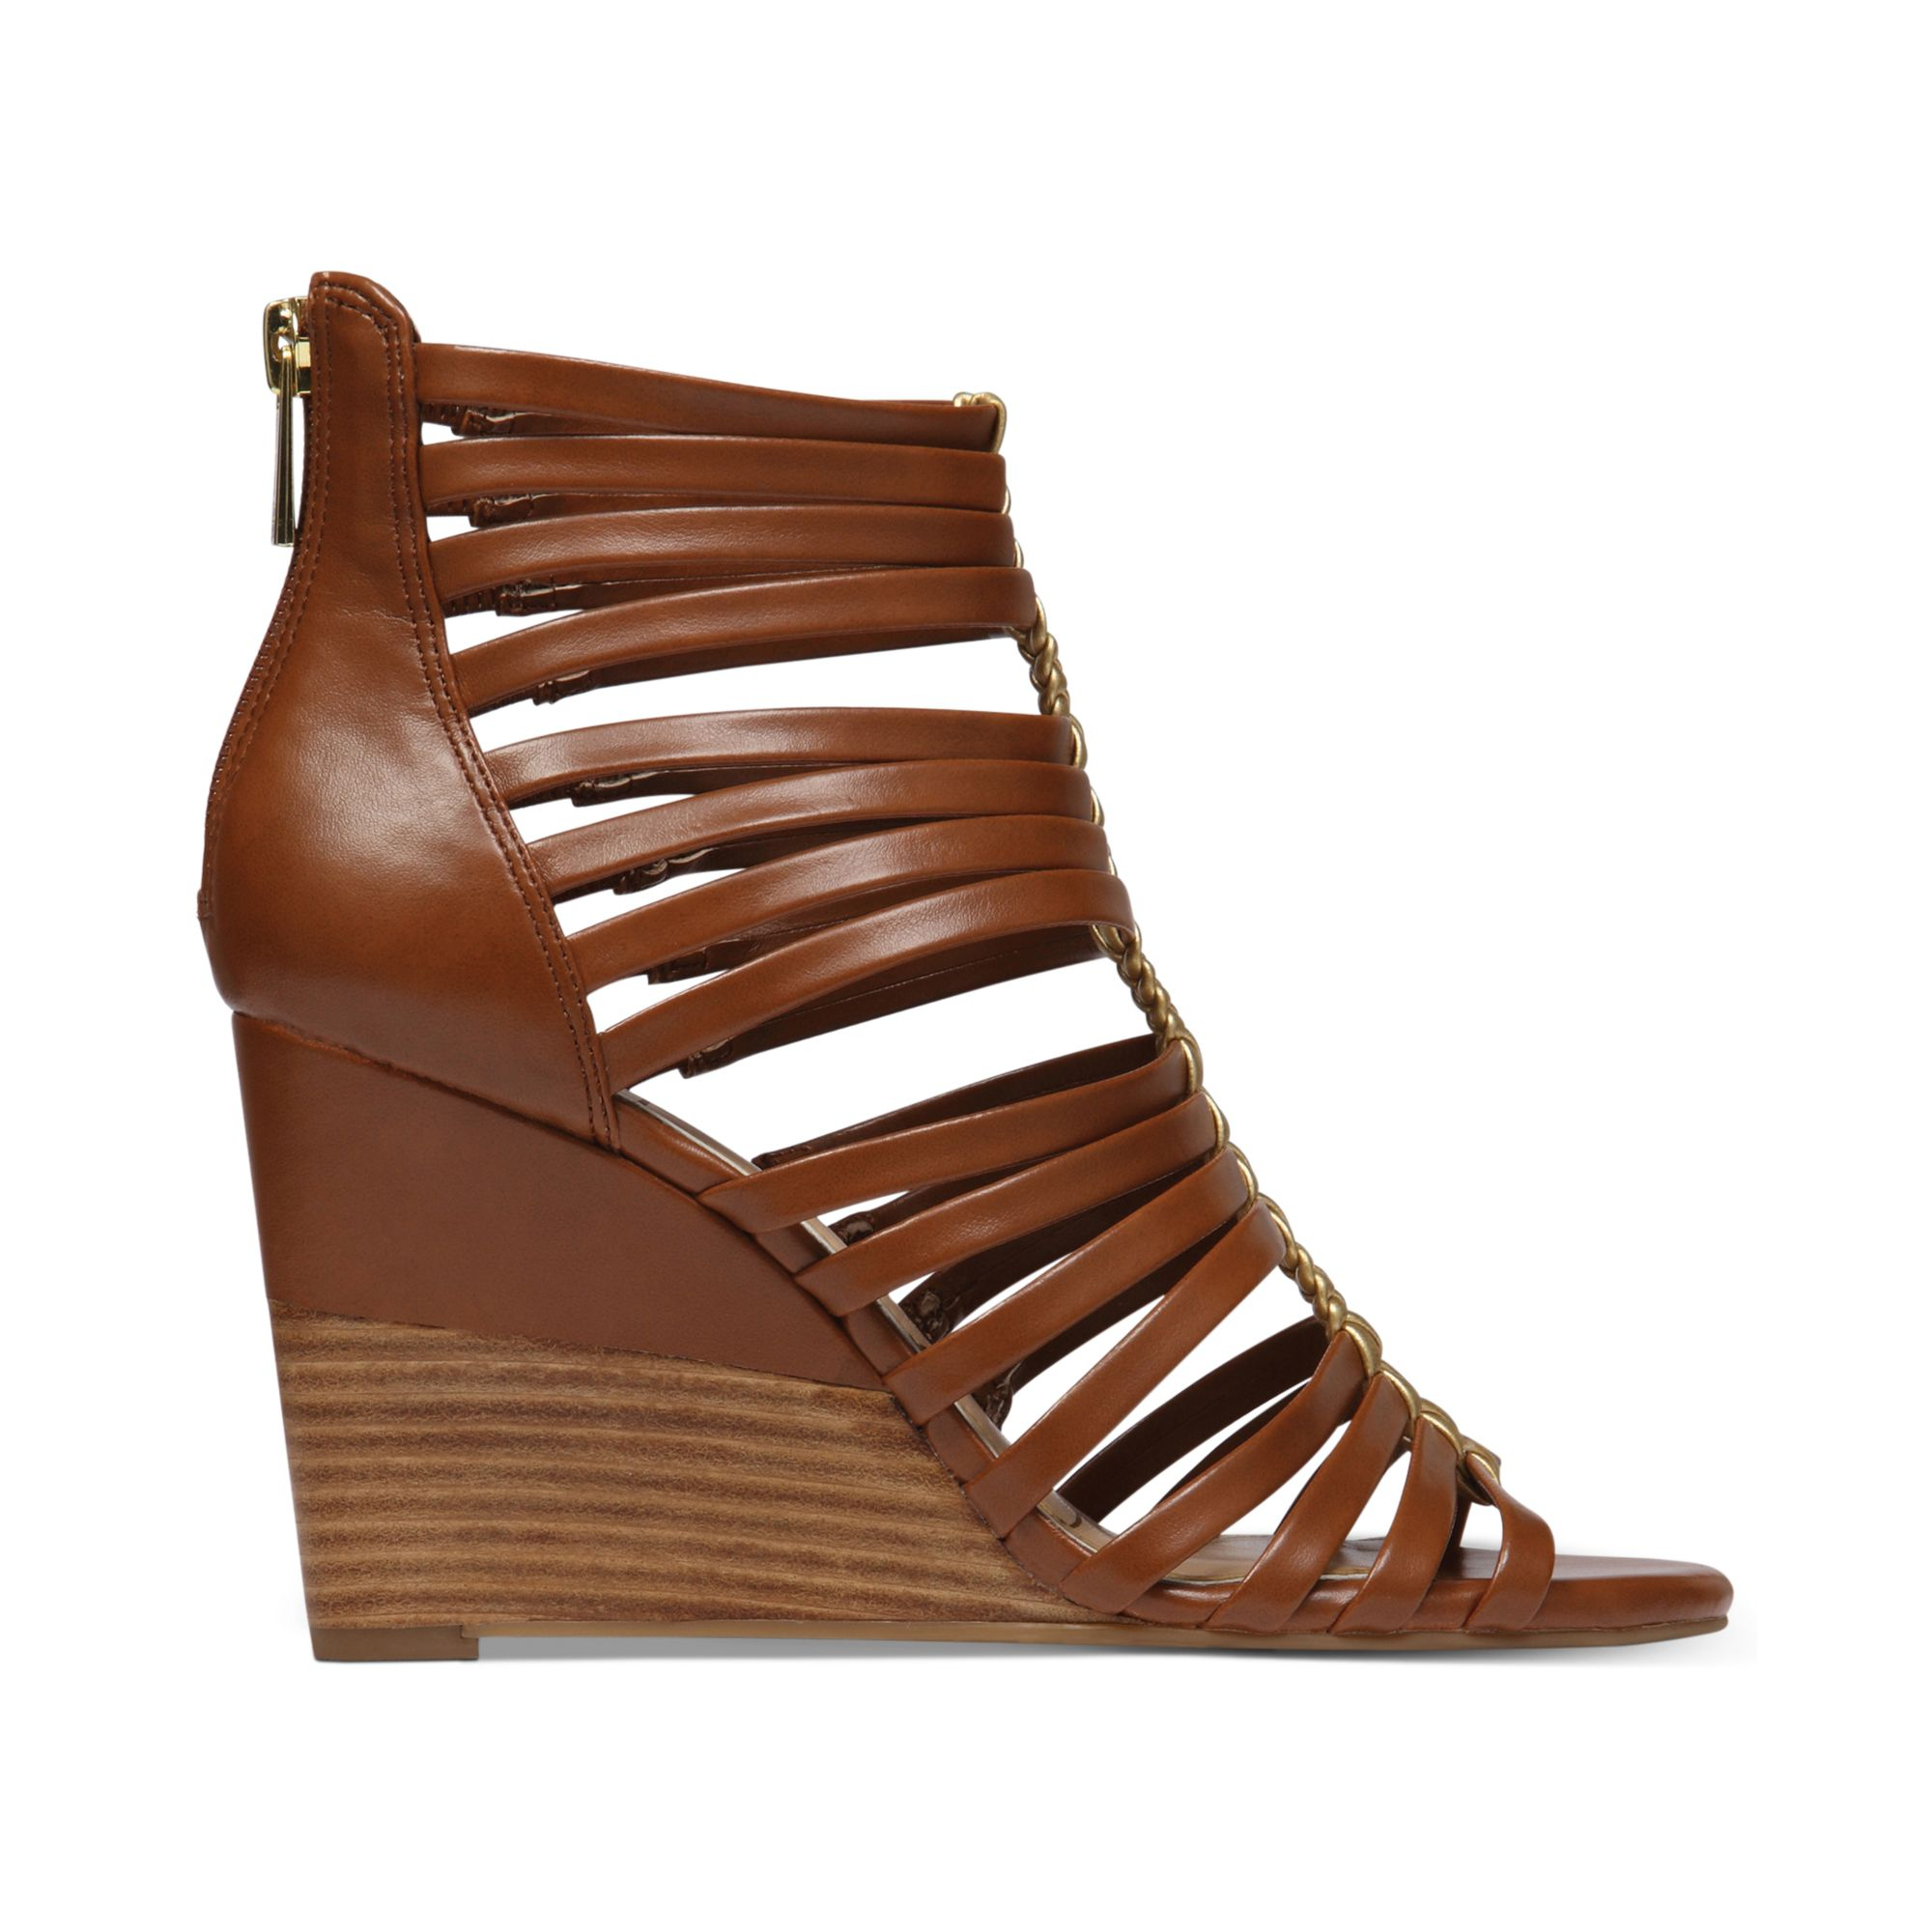 de4b75d4702 Lyst - Jessica Simpson Miccy Wedge Gladiator Sandals in Brown